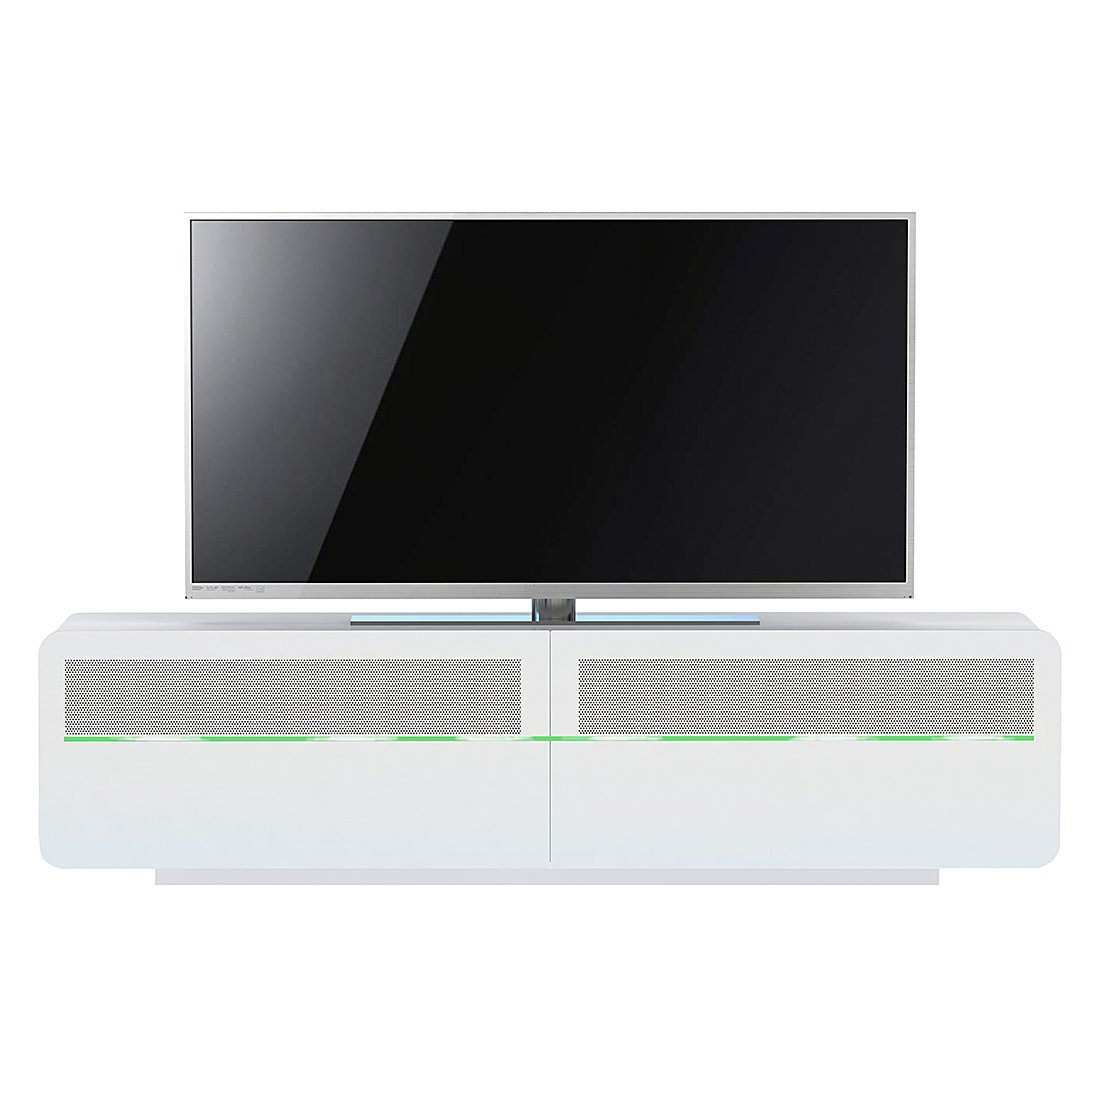 jahnke tv rack Jahnke SL 4182 RGB LED - LCD TV Rack up to 70 inch: Amazon.co.uk: Kitchen u0026  Home